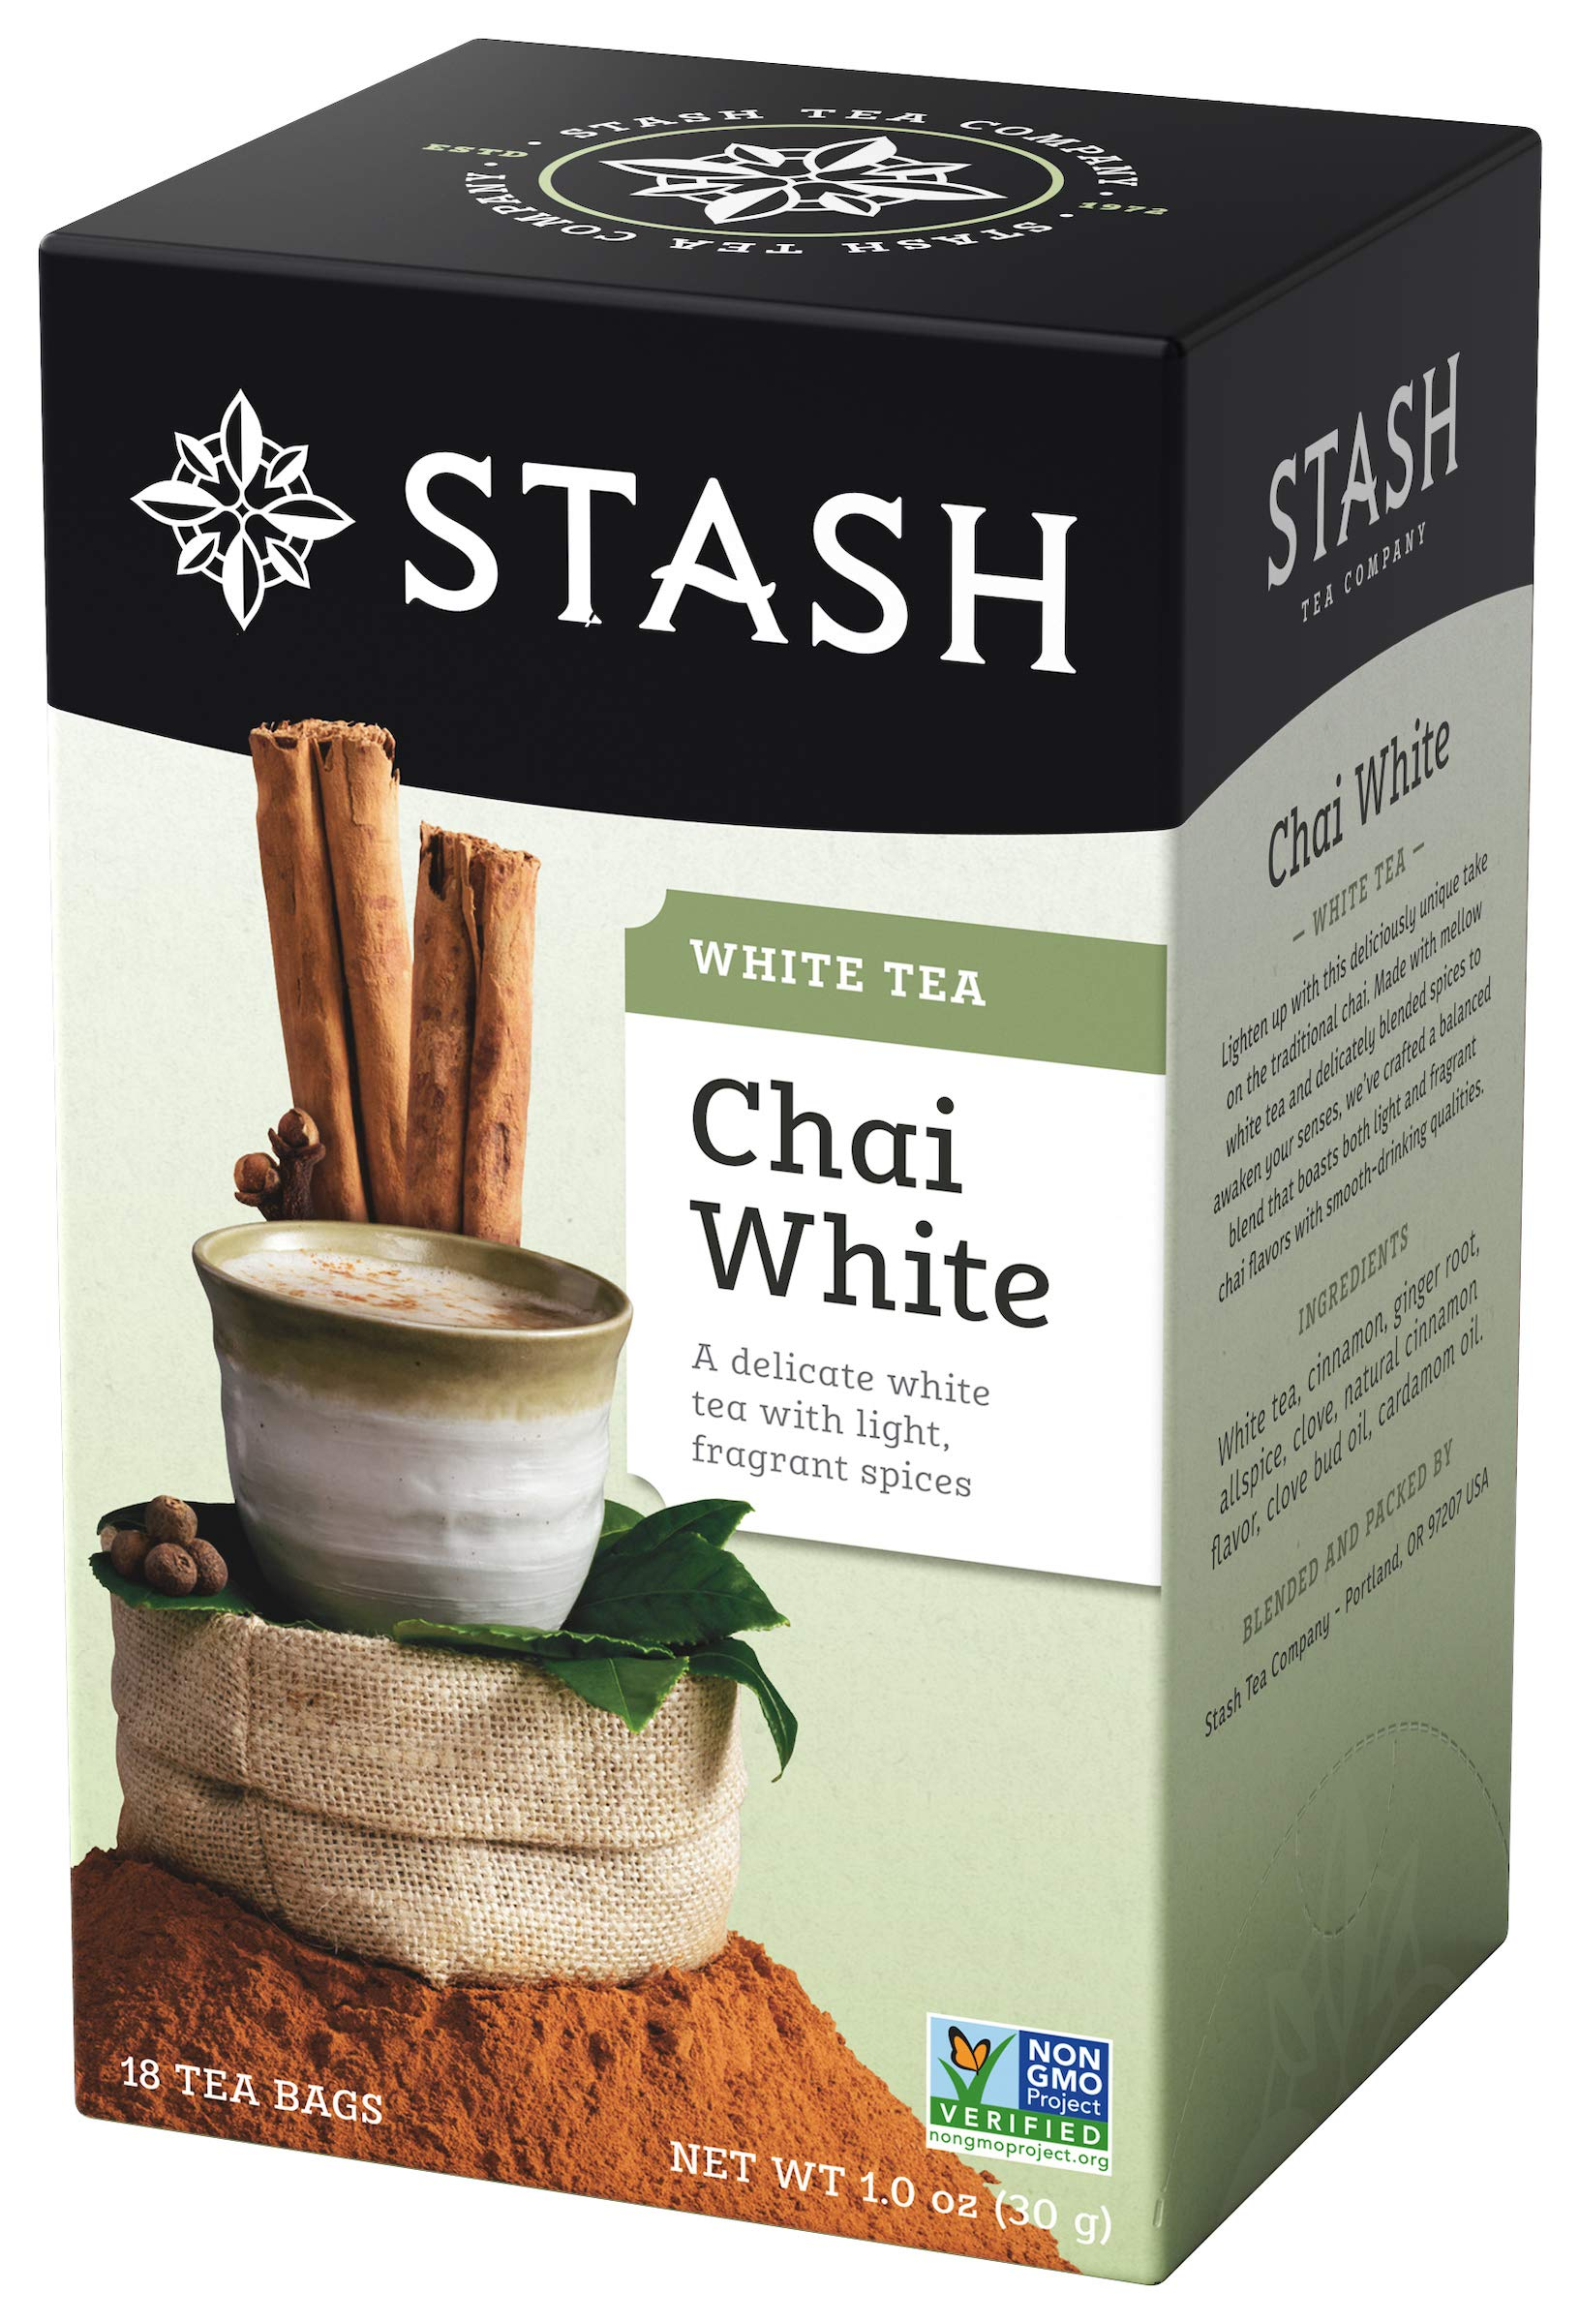 Stash Tea White Chai Tea 18 Count Tea Bags in Foil (Pack of 6) Individual Spiced White Tea Bags for Use in Teapots Mugs or Cups, Brew Hot Tea or Iced Tea